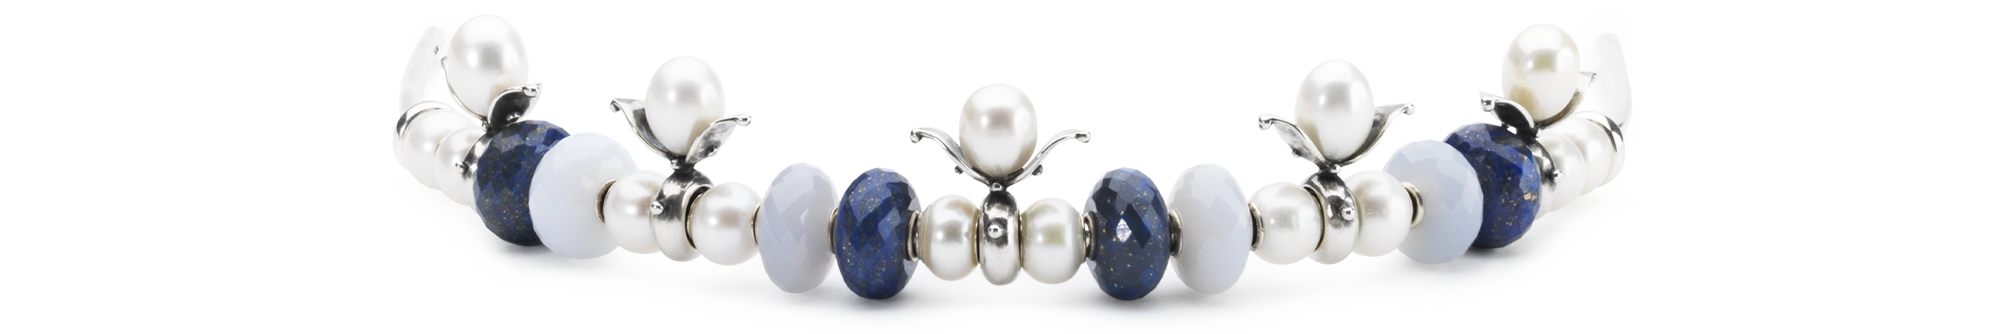 Tiara with Lapis Lazuli and grey moonstone beads, and Budding Pearl Spacer, and white pearl beads